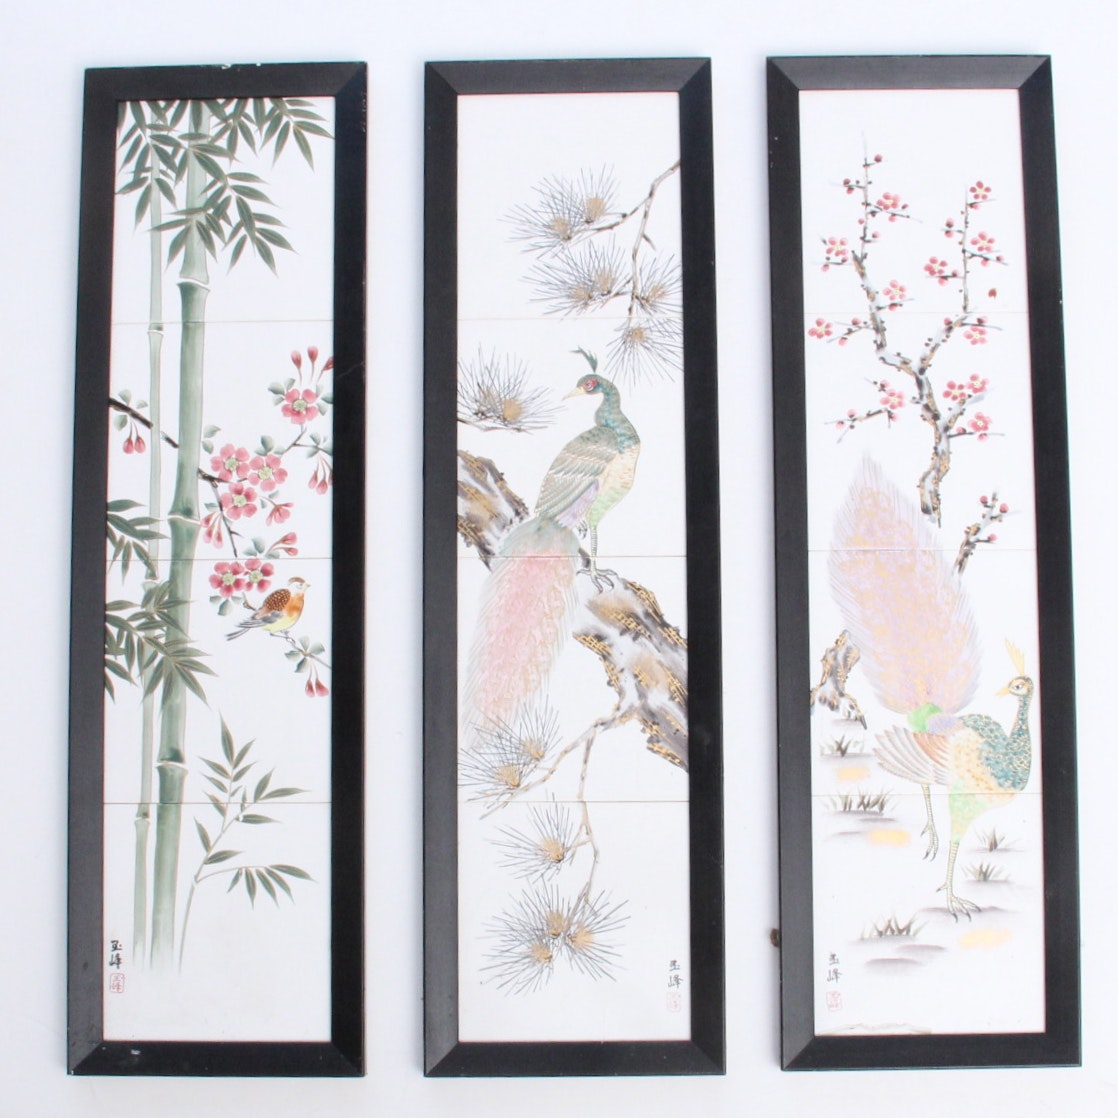 Hand Painted Chinese Tile Art